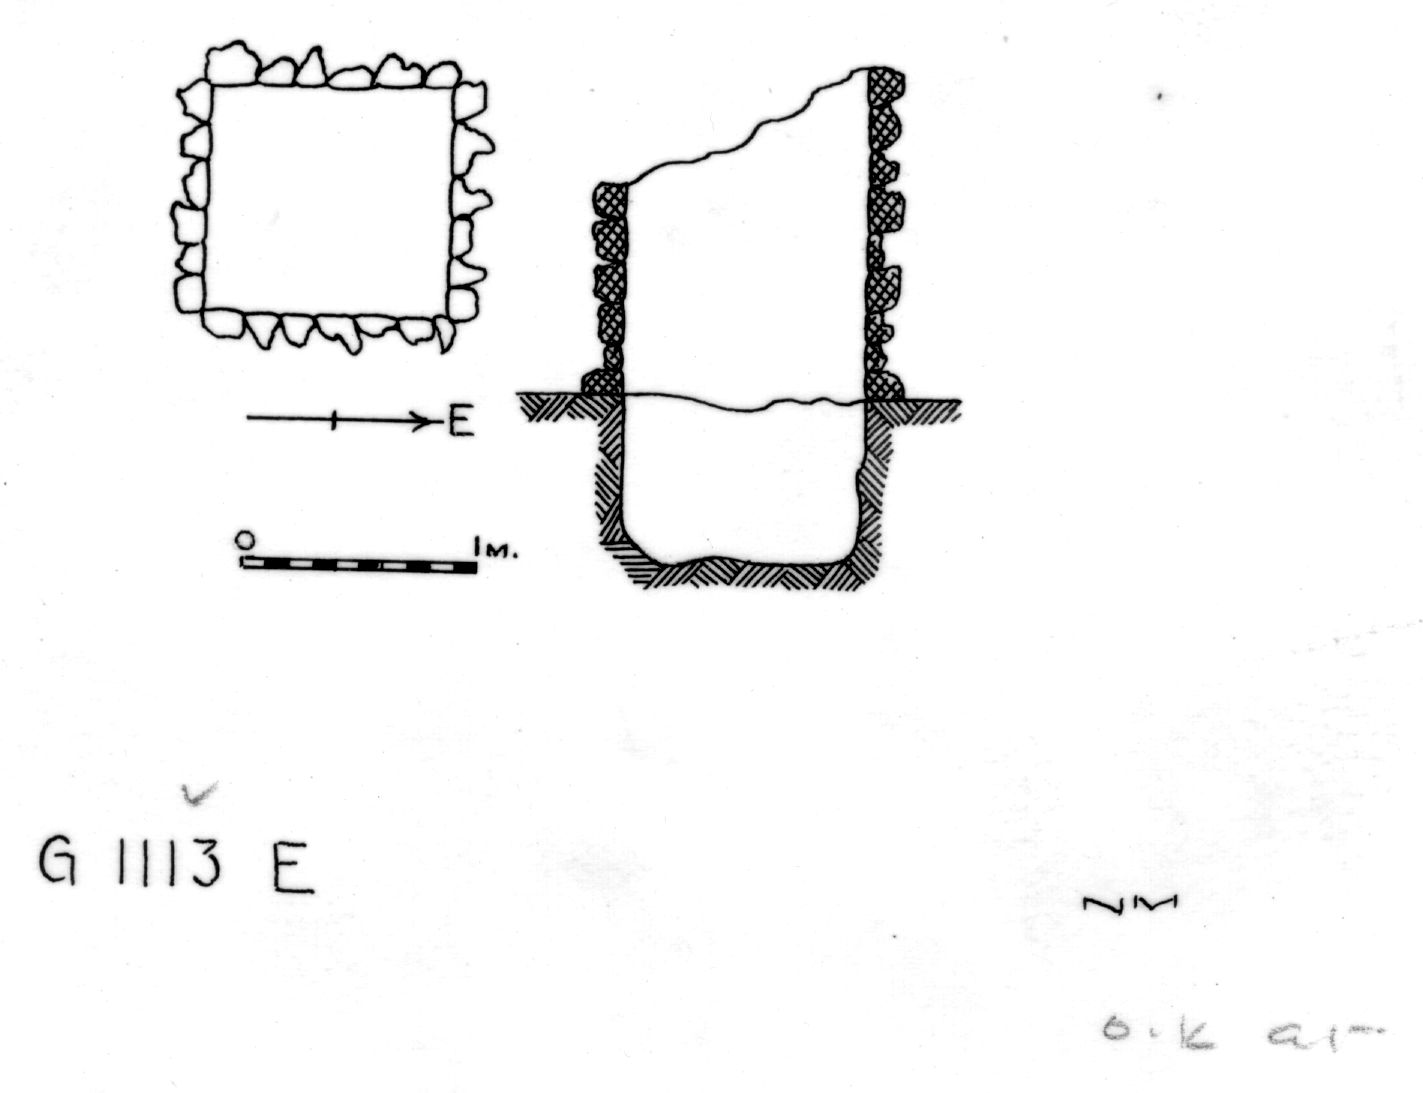 Maps and plans: G 1112+1113: G 1113, Shaft E